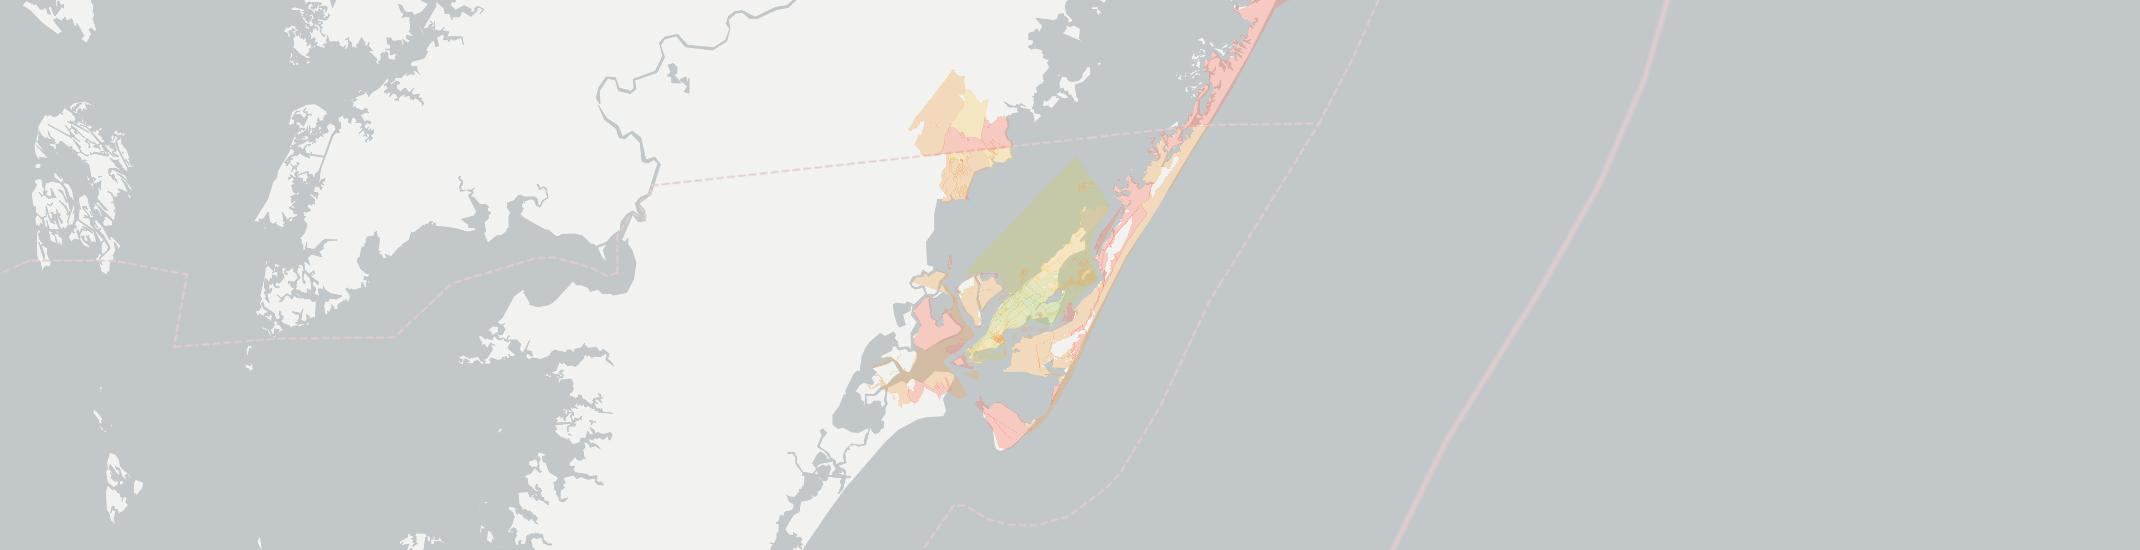 Chincoteague Internet Competition Map. Click for interactive map.